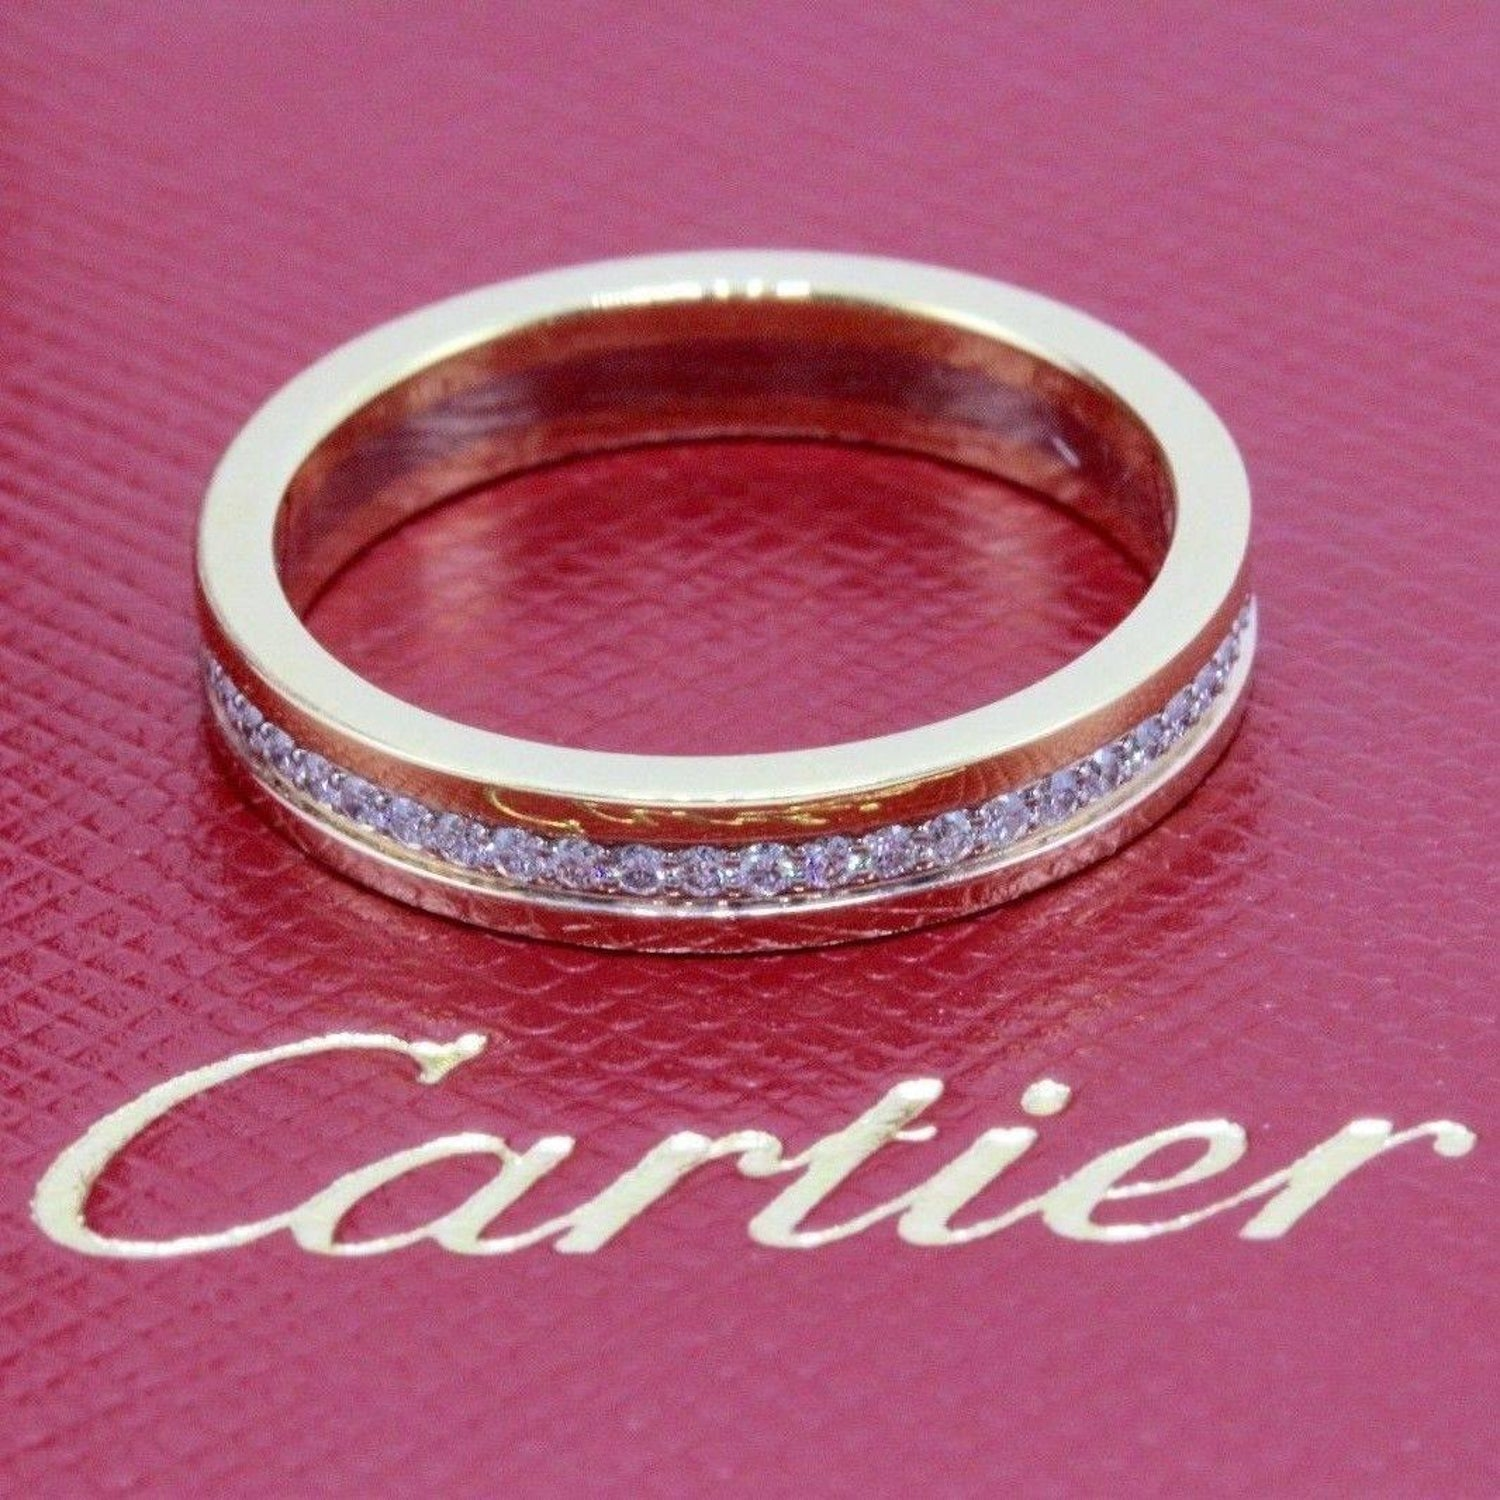 Cartier Trinity Diamond Wedding Band Ring in 18 Karat Yellow and ...